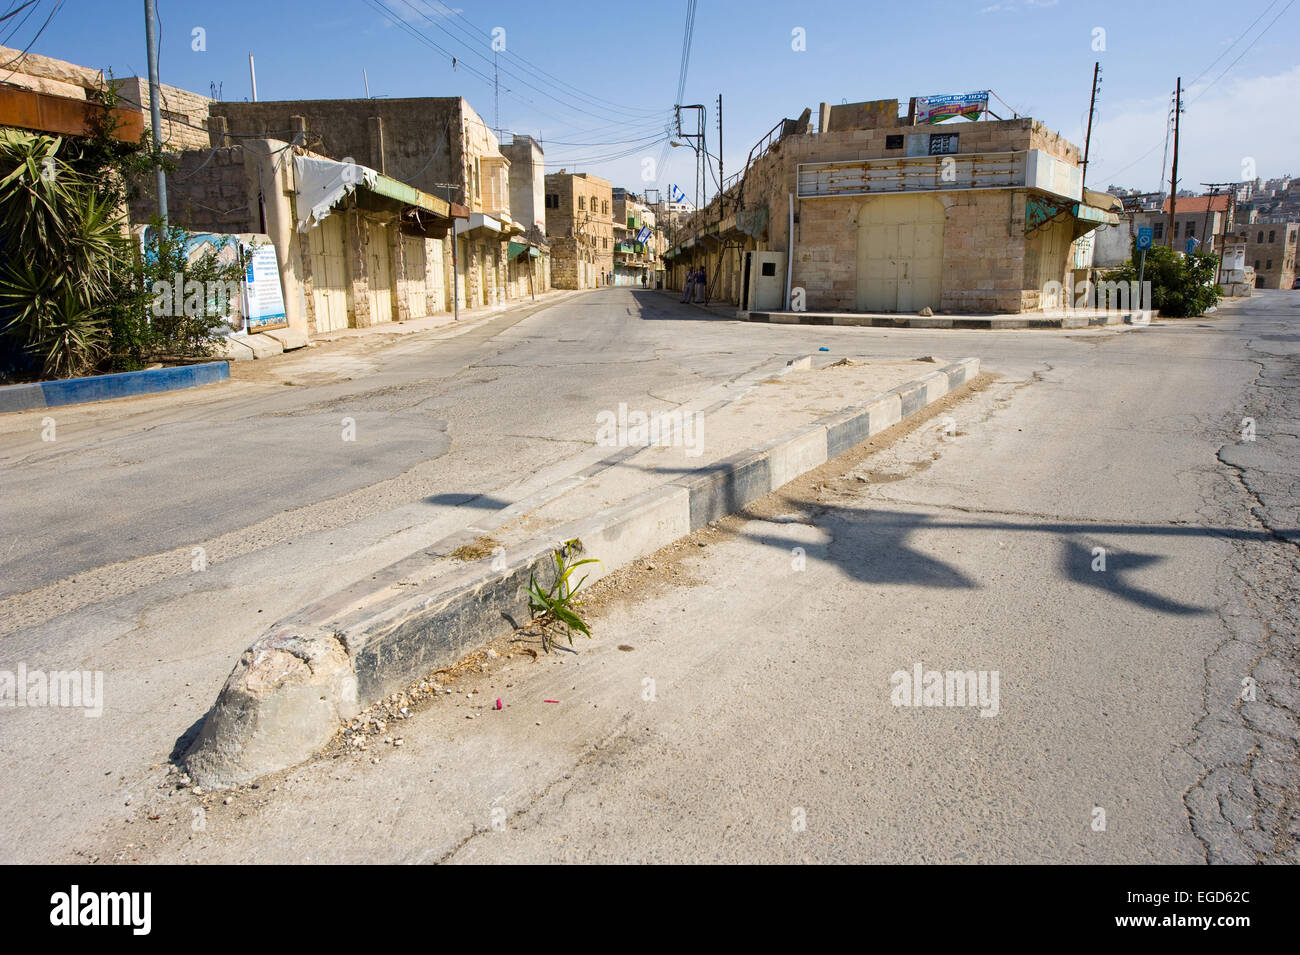 HEBRON, ISRAEL - 10 OCT,  2014: Deserted street near the center of Hebron where the second intifada in 2000 was - Stock Image